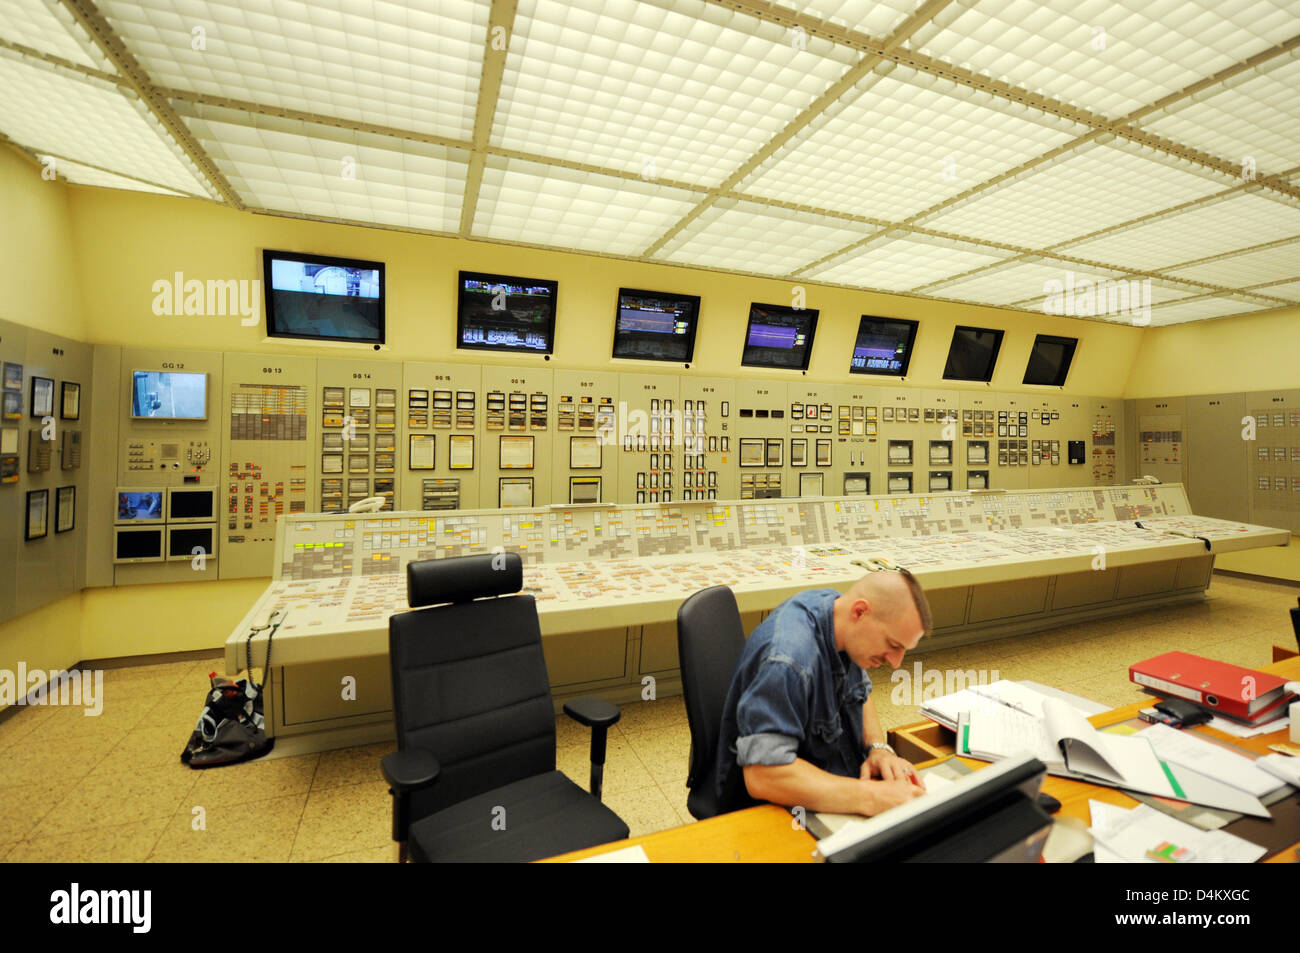 The switch room of the former atomic power plant in Obrigheim, Germany, 20 May 2009. The plant was shut down in Stock Photo